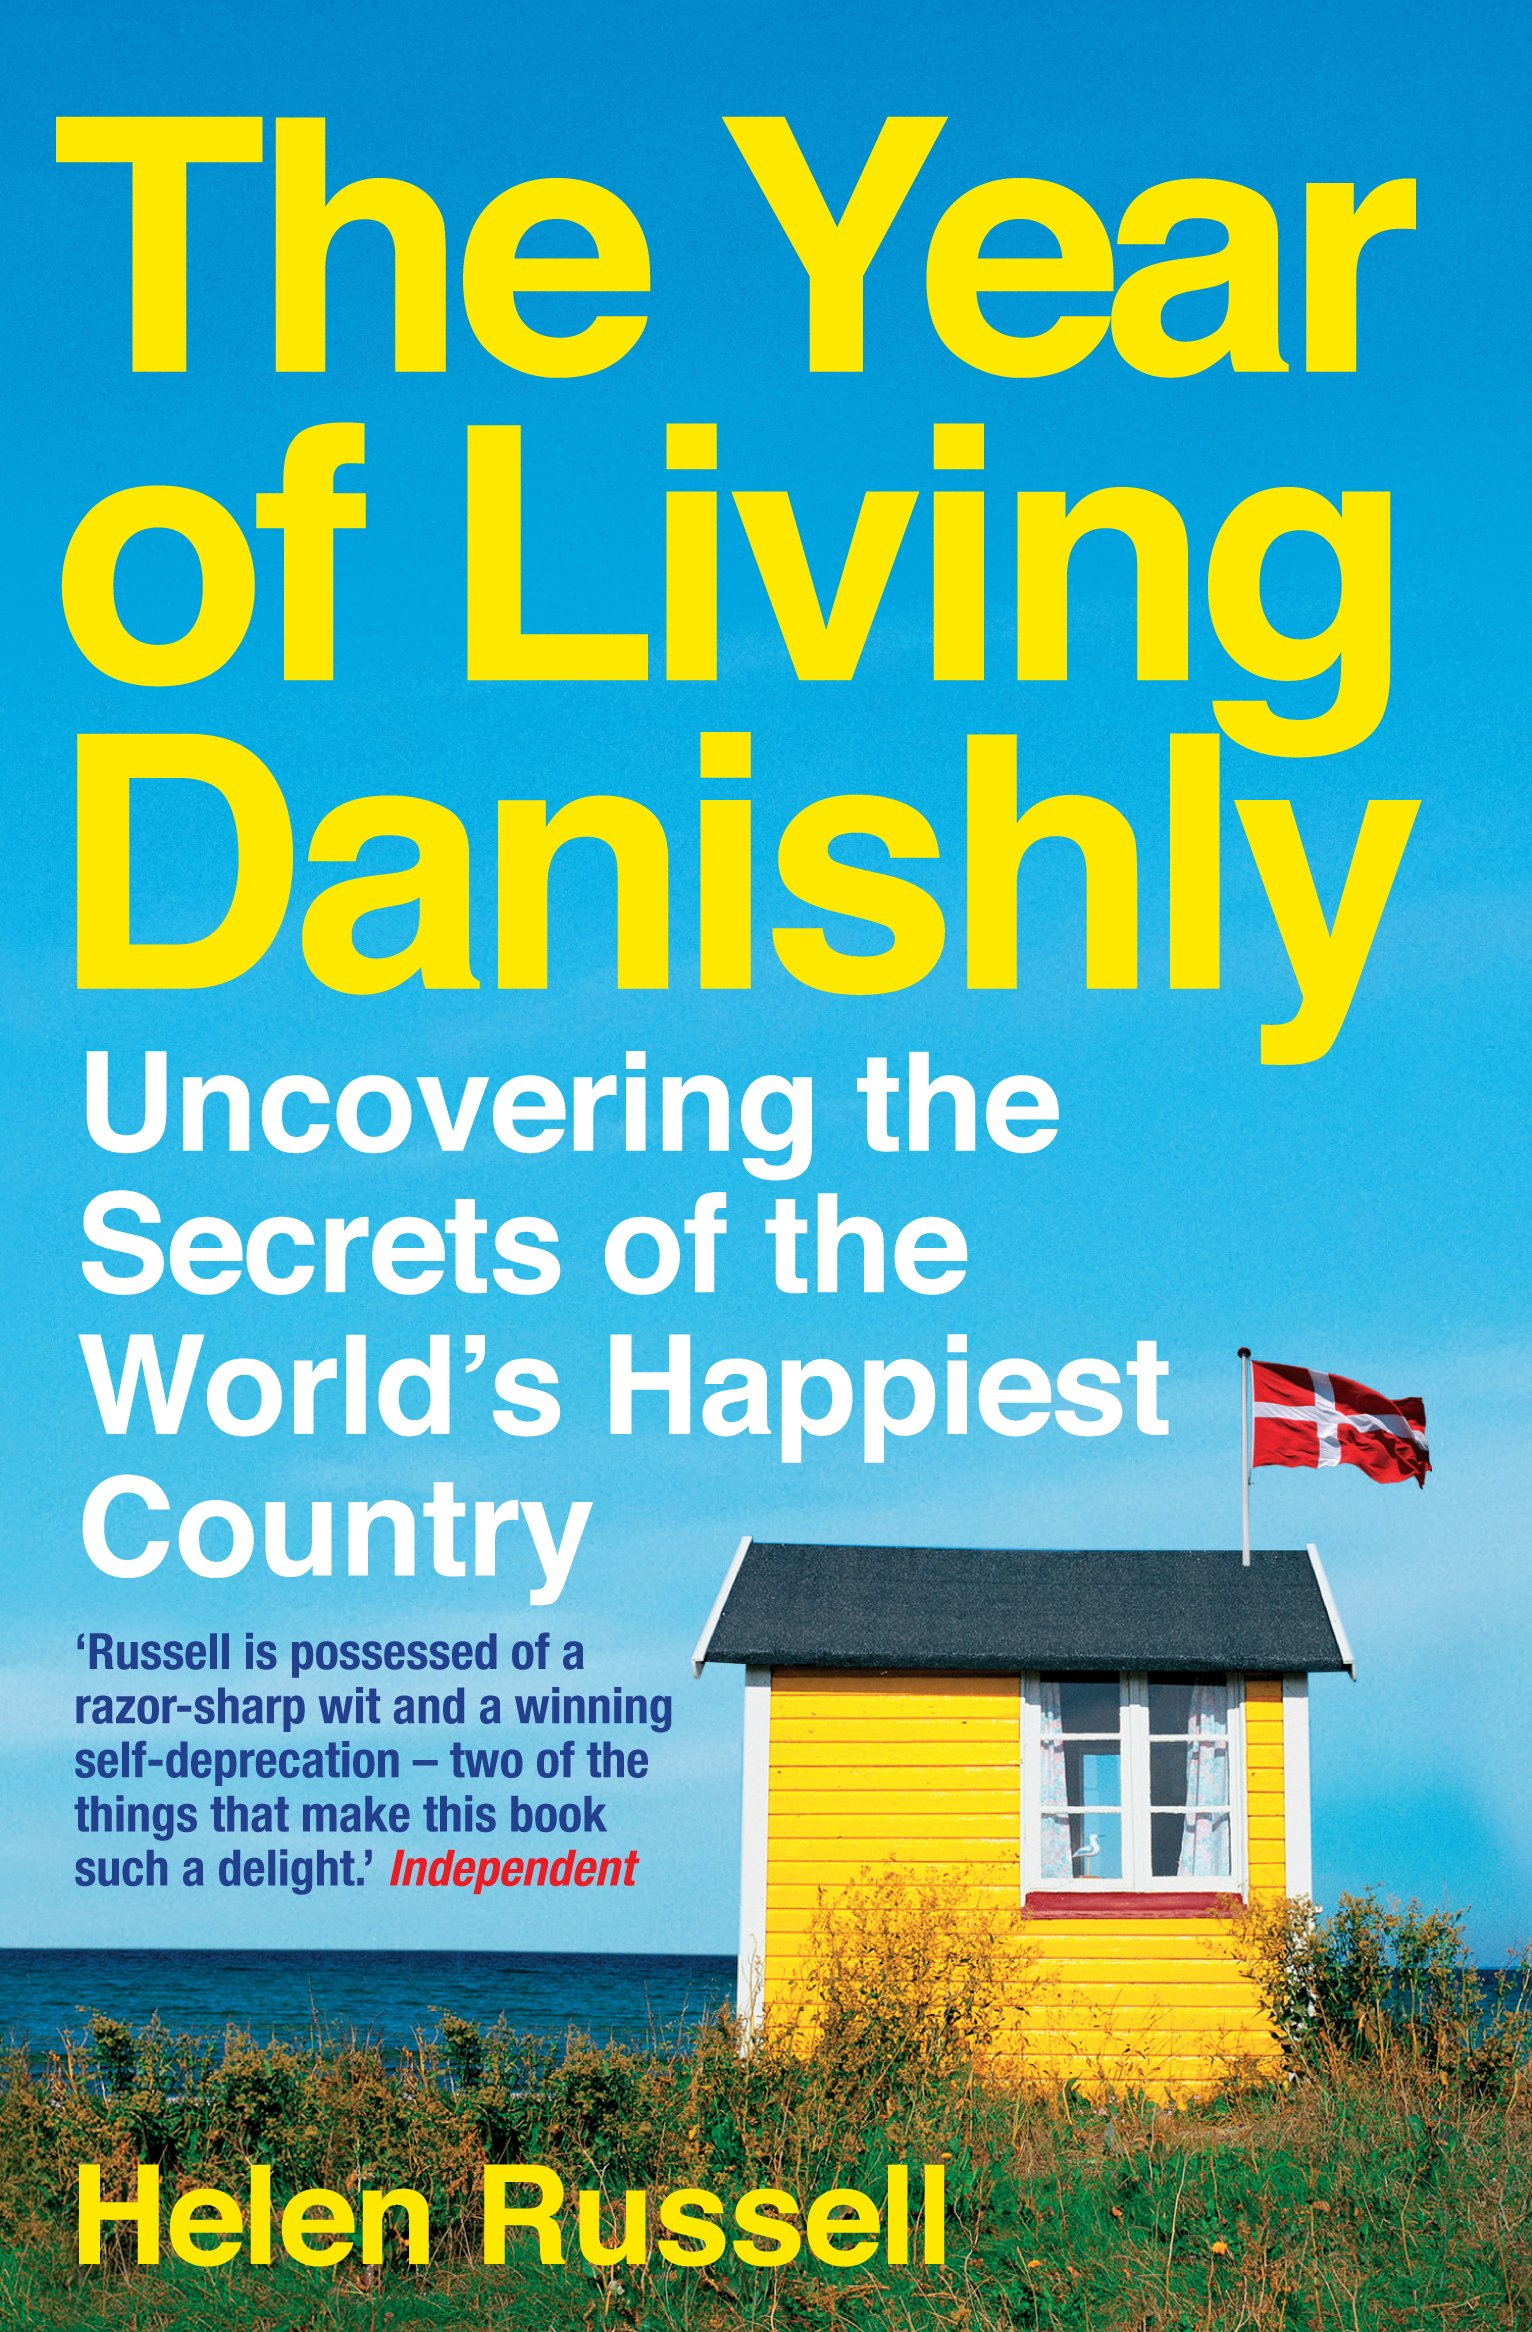 Résultats de recherche d'images pour « The Year of Living Danishly: Uncovering the Secrets of the World's Happiest Country »